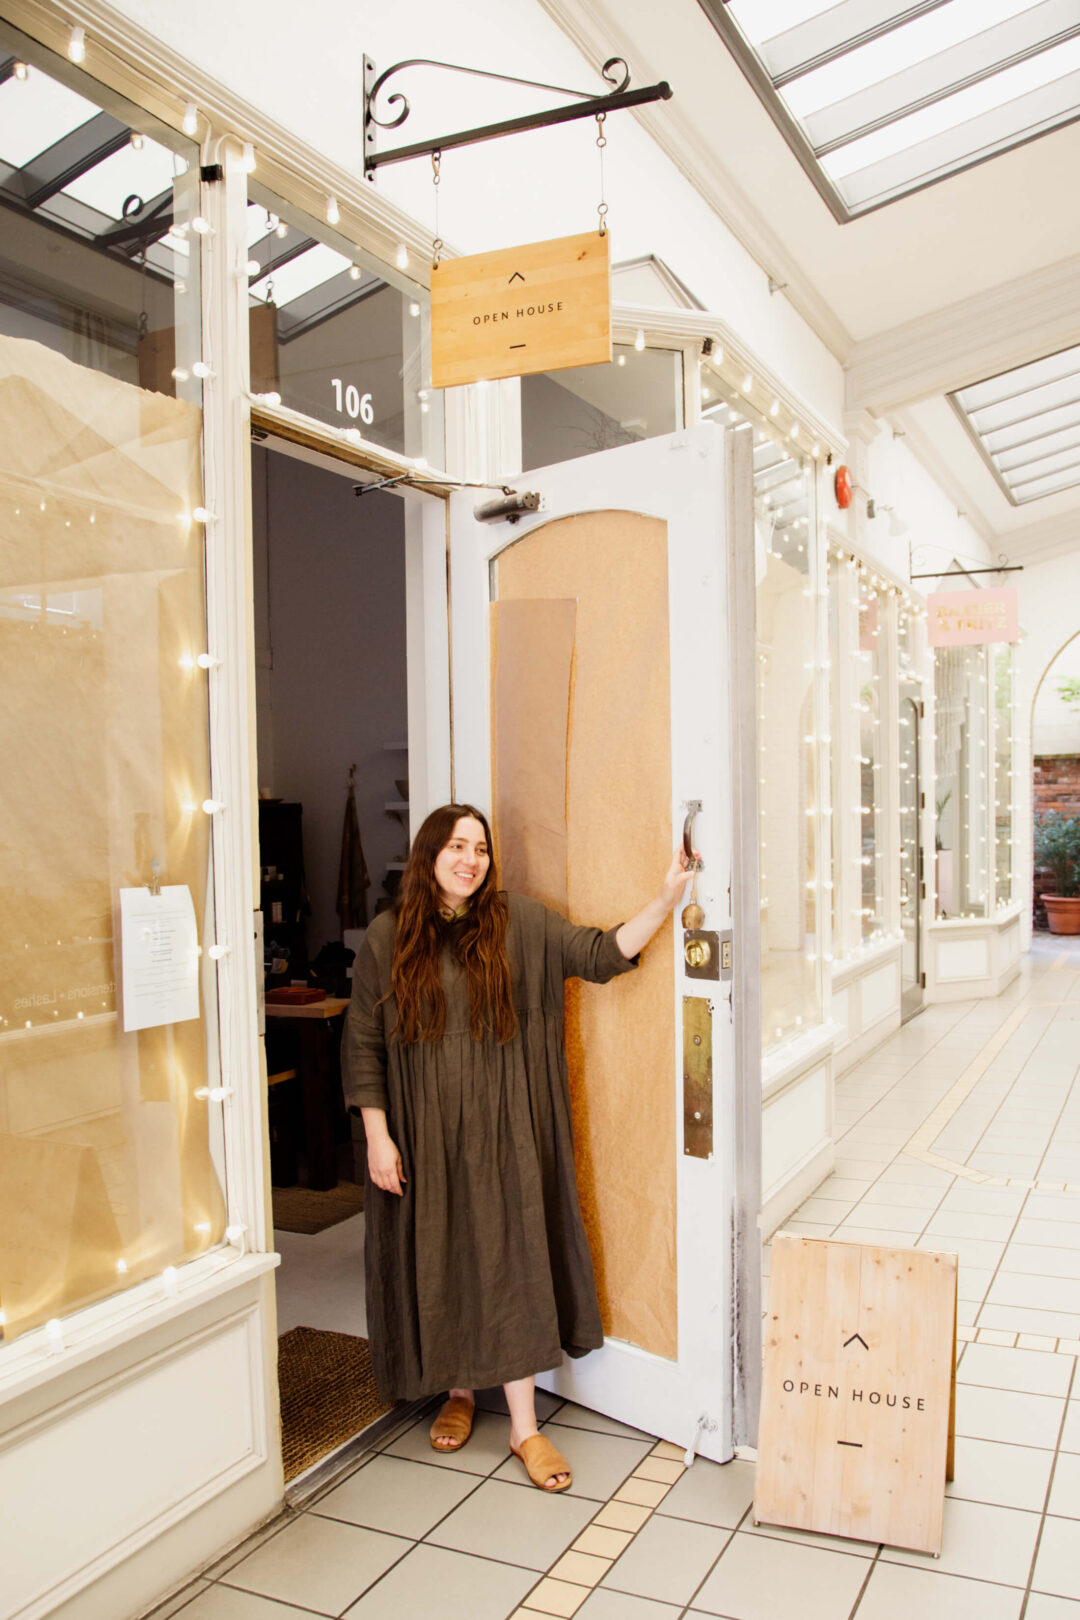 A shopowner stands outside her shop doors.